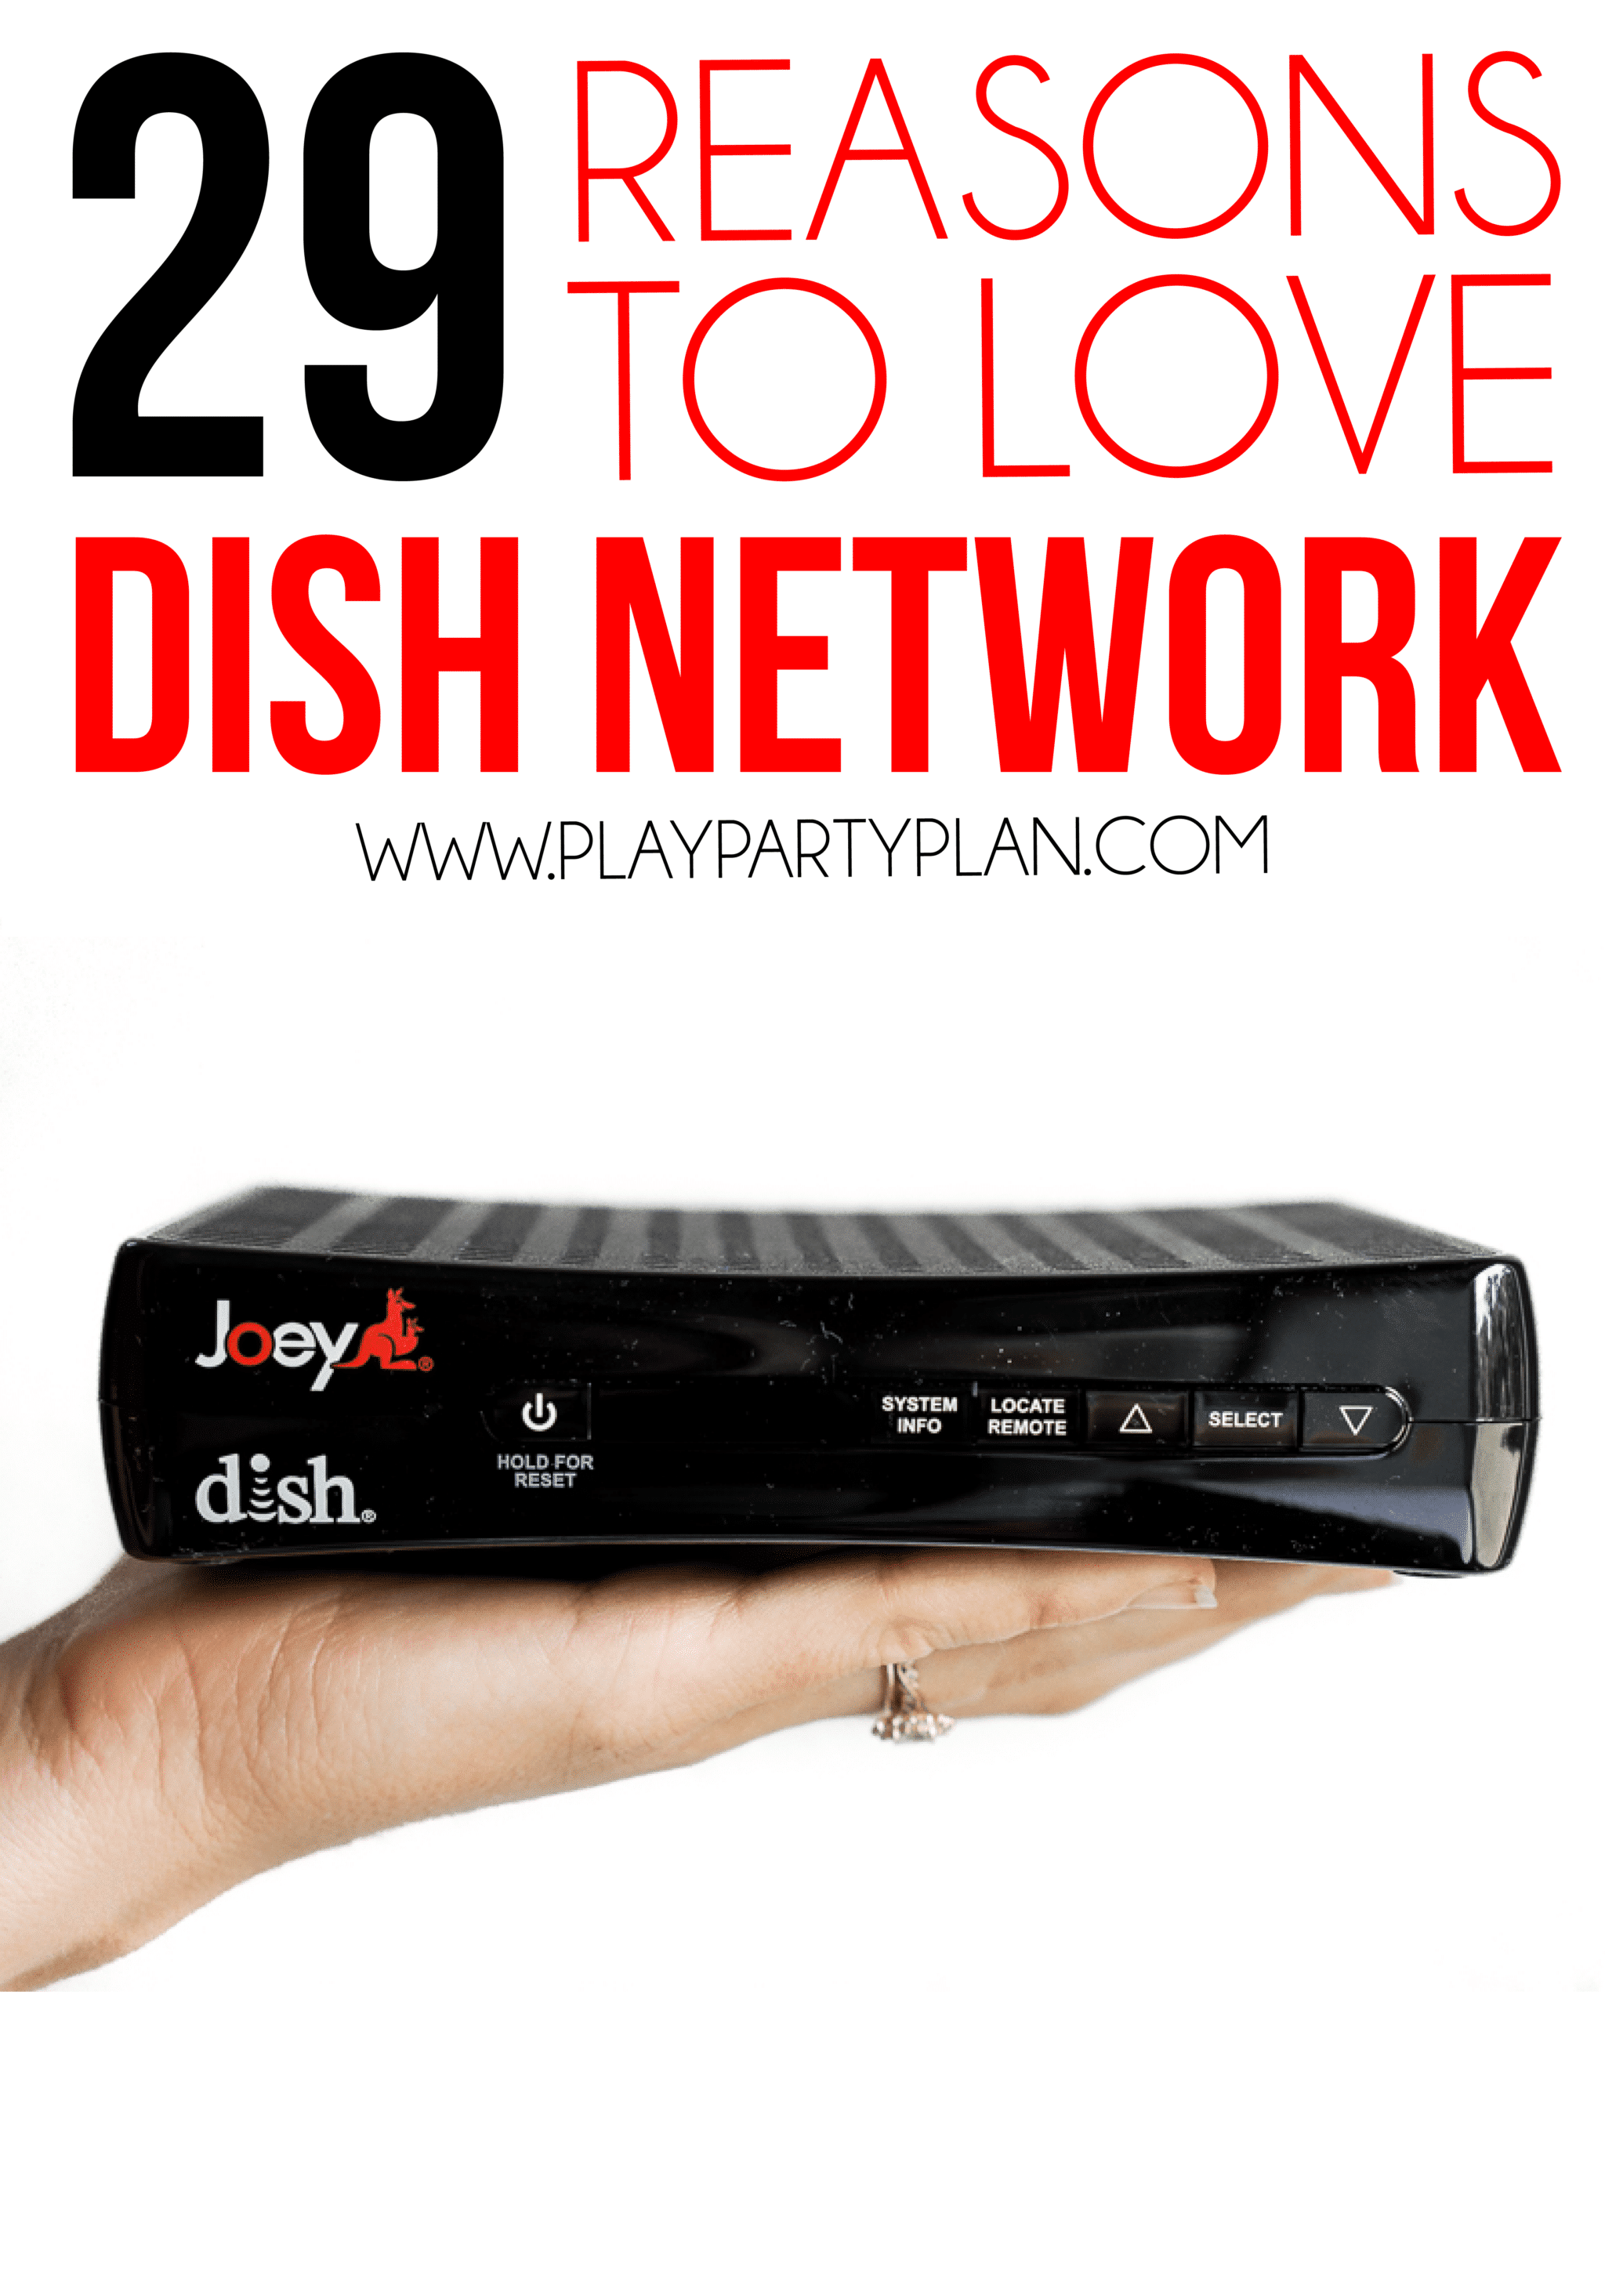 Tips, tricks, and hacks for getting the most of your DISH Network! And if you're not a DISH network customer yet, 29 reasons to sign up now! via @playpartyplan